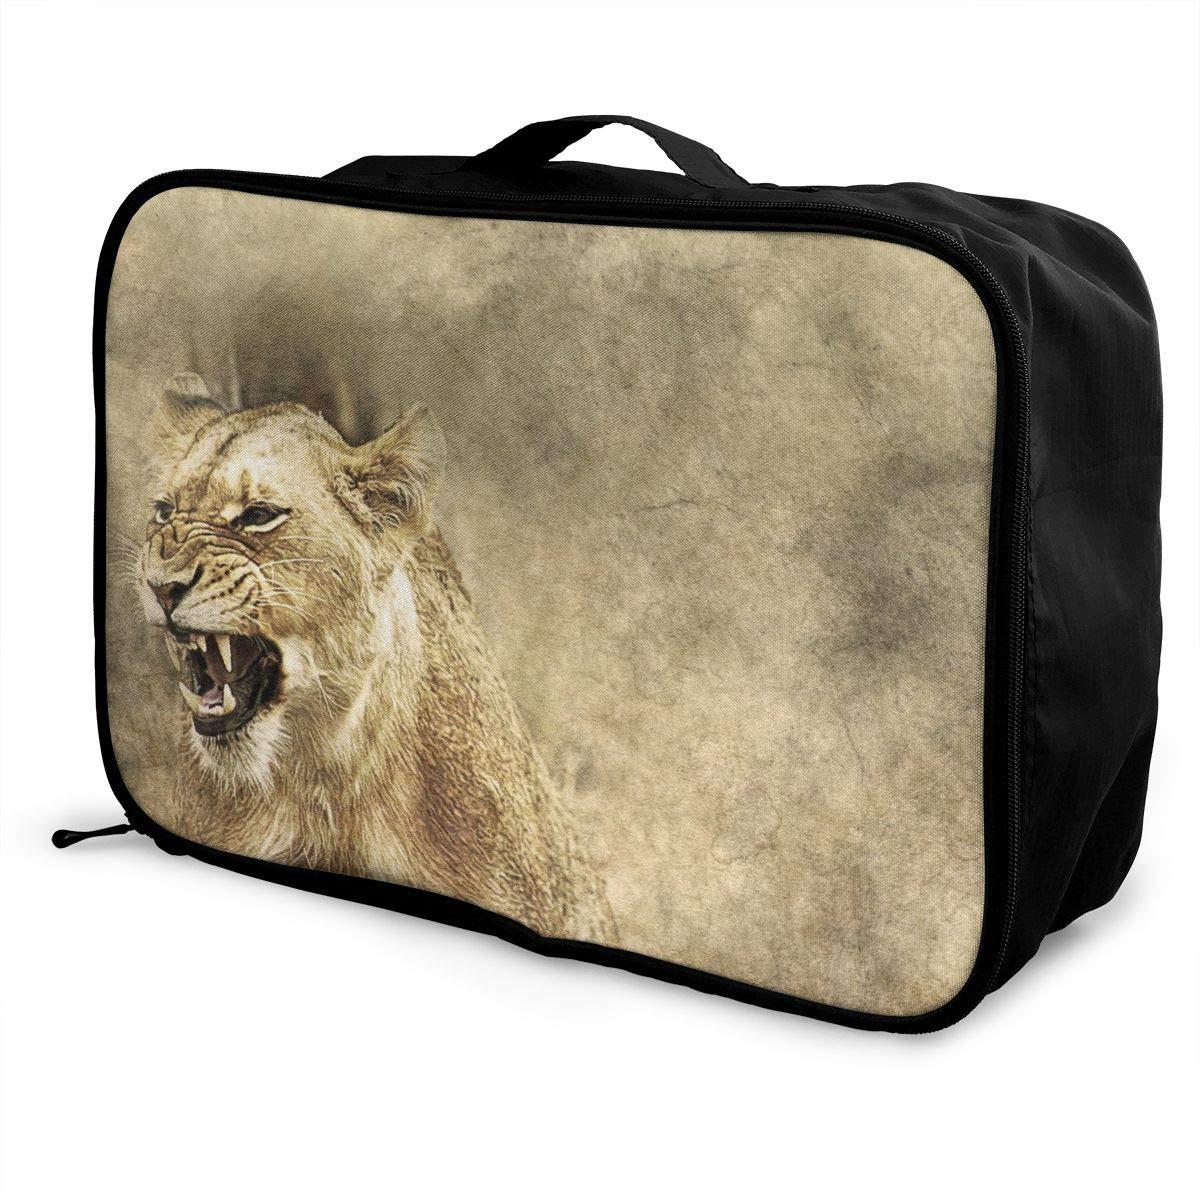 Creative Animal Texture Forest Travel Lightweight Waterproof Foldable Storage Carry Luggage Large Capacity Portable Luggage Bag Duffel Bag